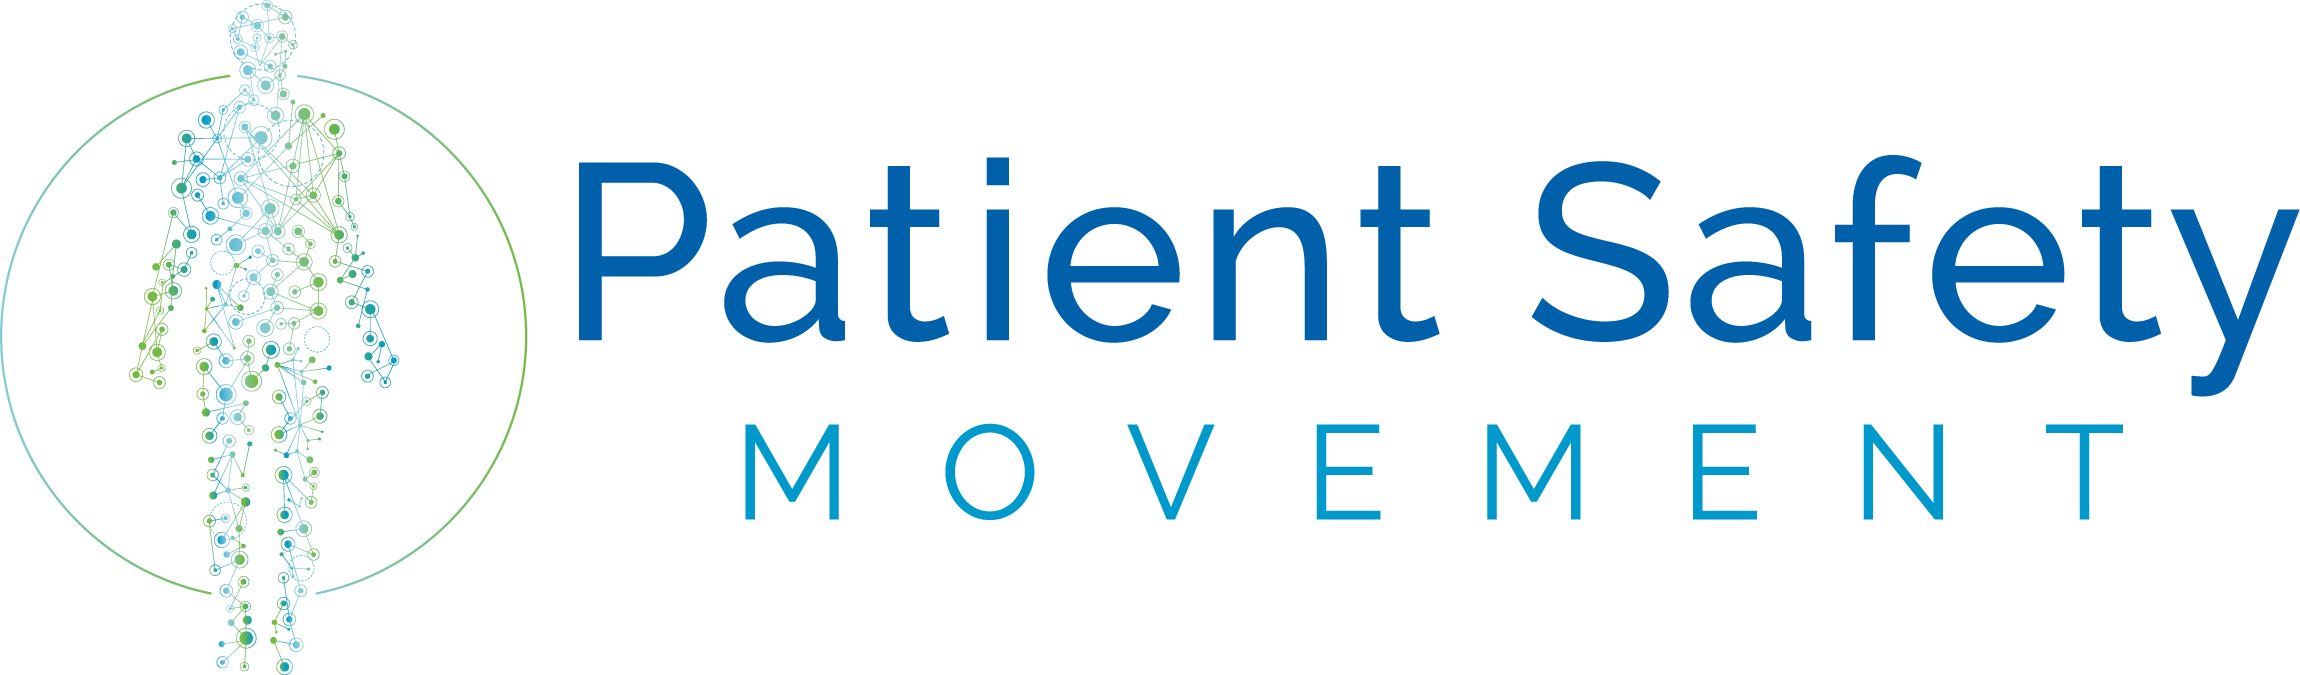 Patient_Safety_Movement_logo_notag